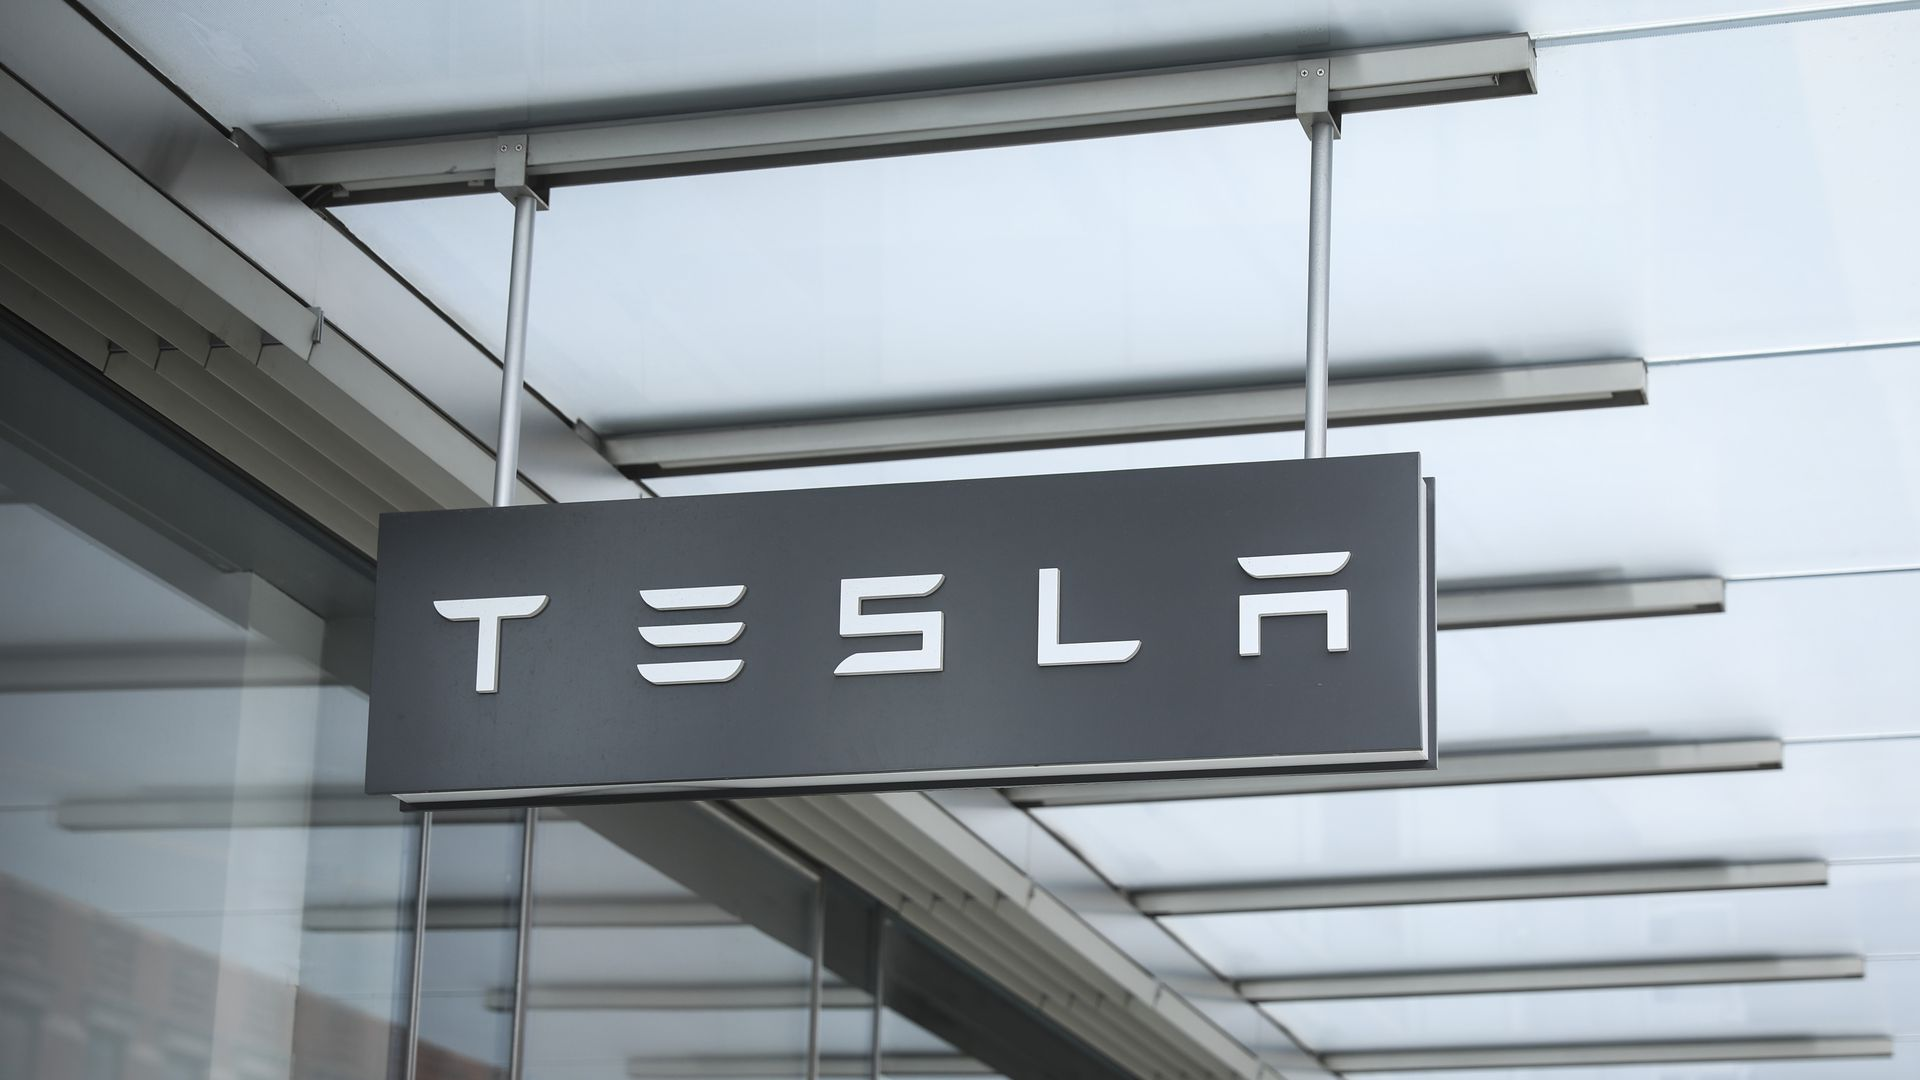 A Tesla showroom in New York City. Photo: Drew Angerer/Getty Images